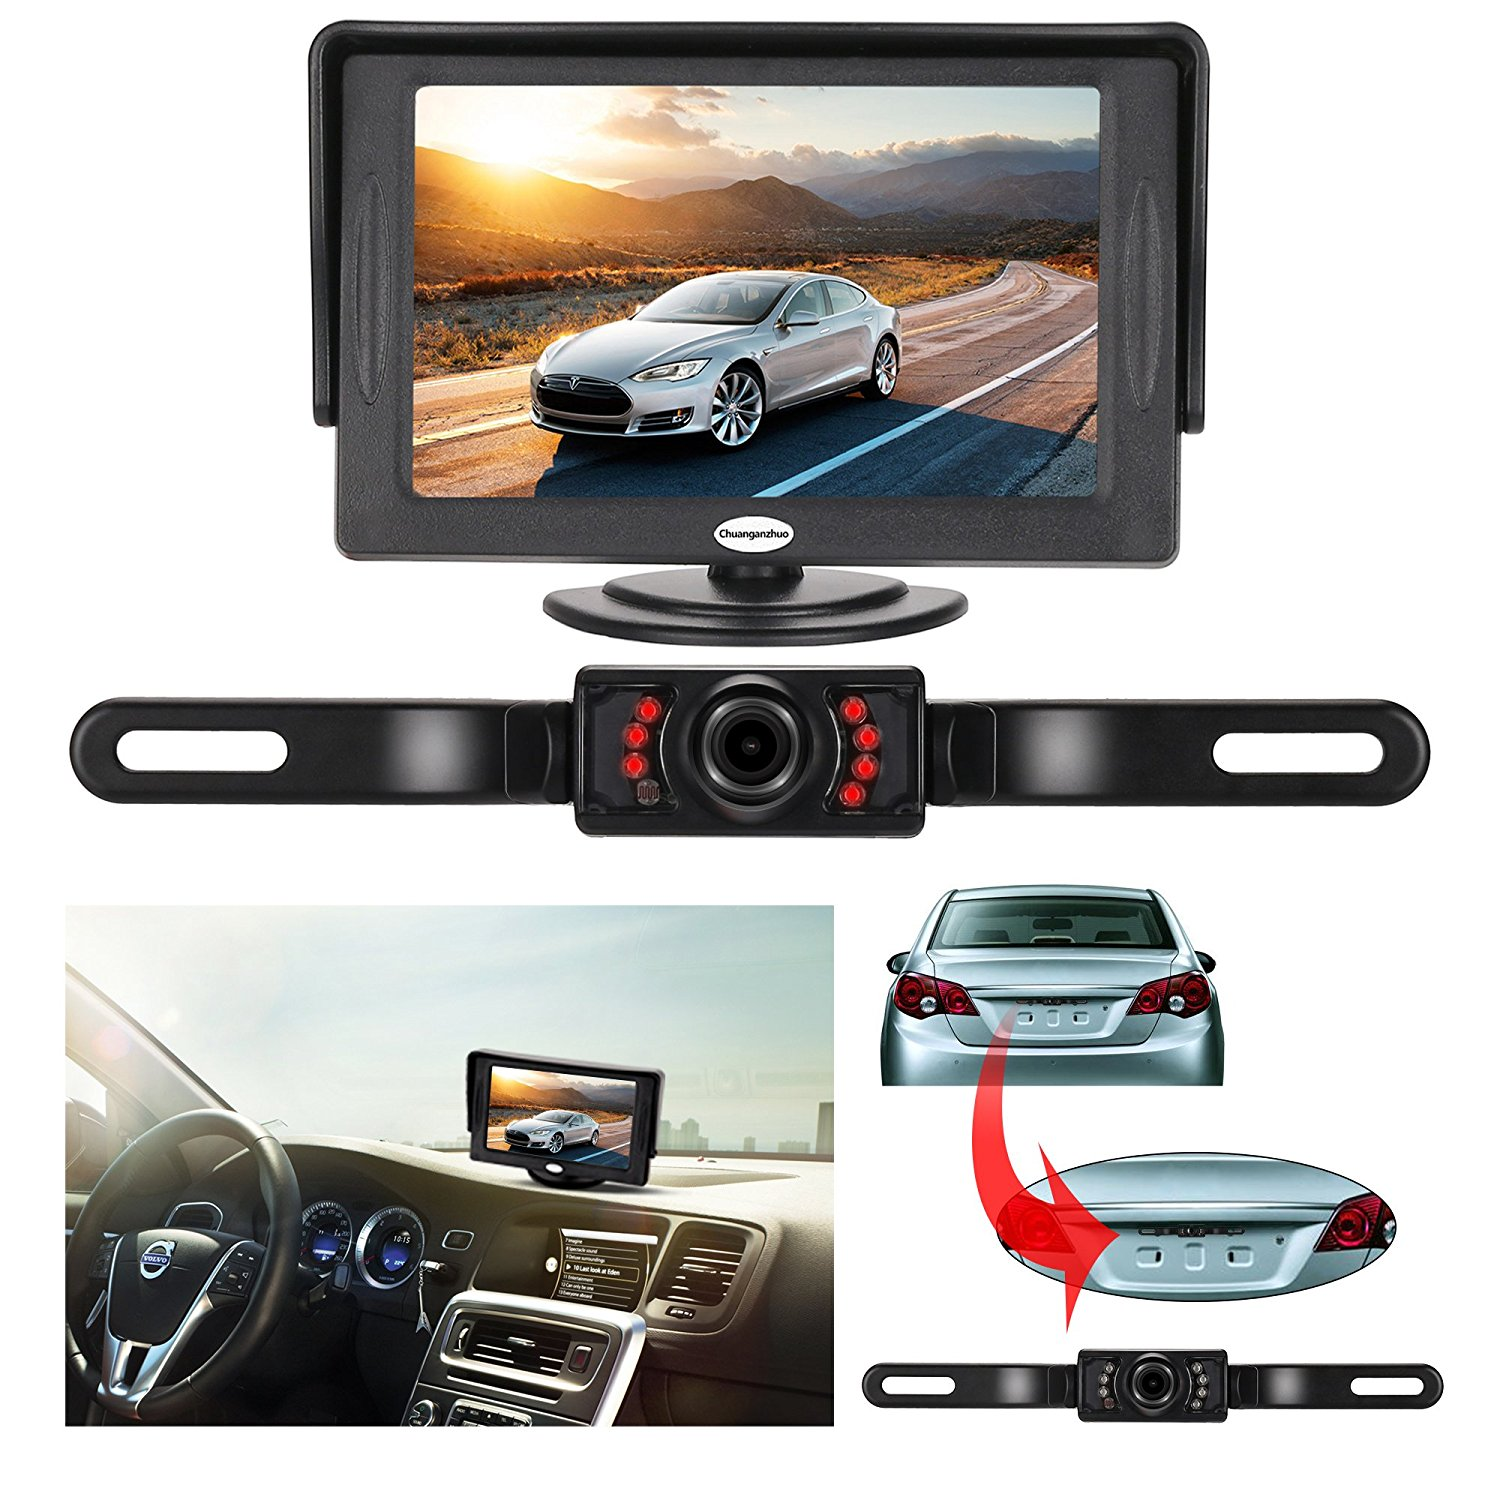 Best Backup Camera 2019 The 10 Best Backup Cameras to Buy 2019   Auto Quarterly